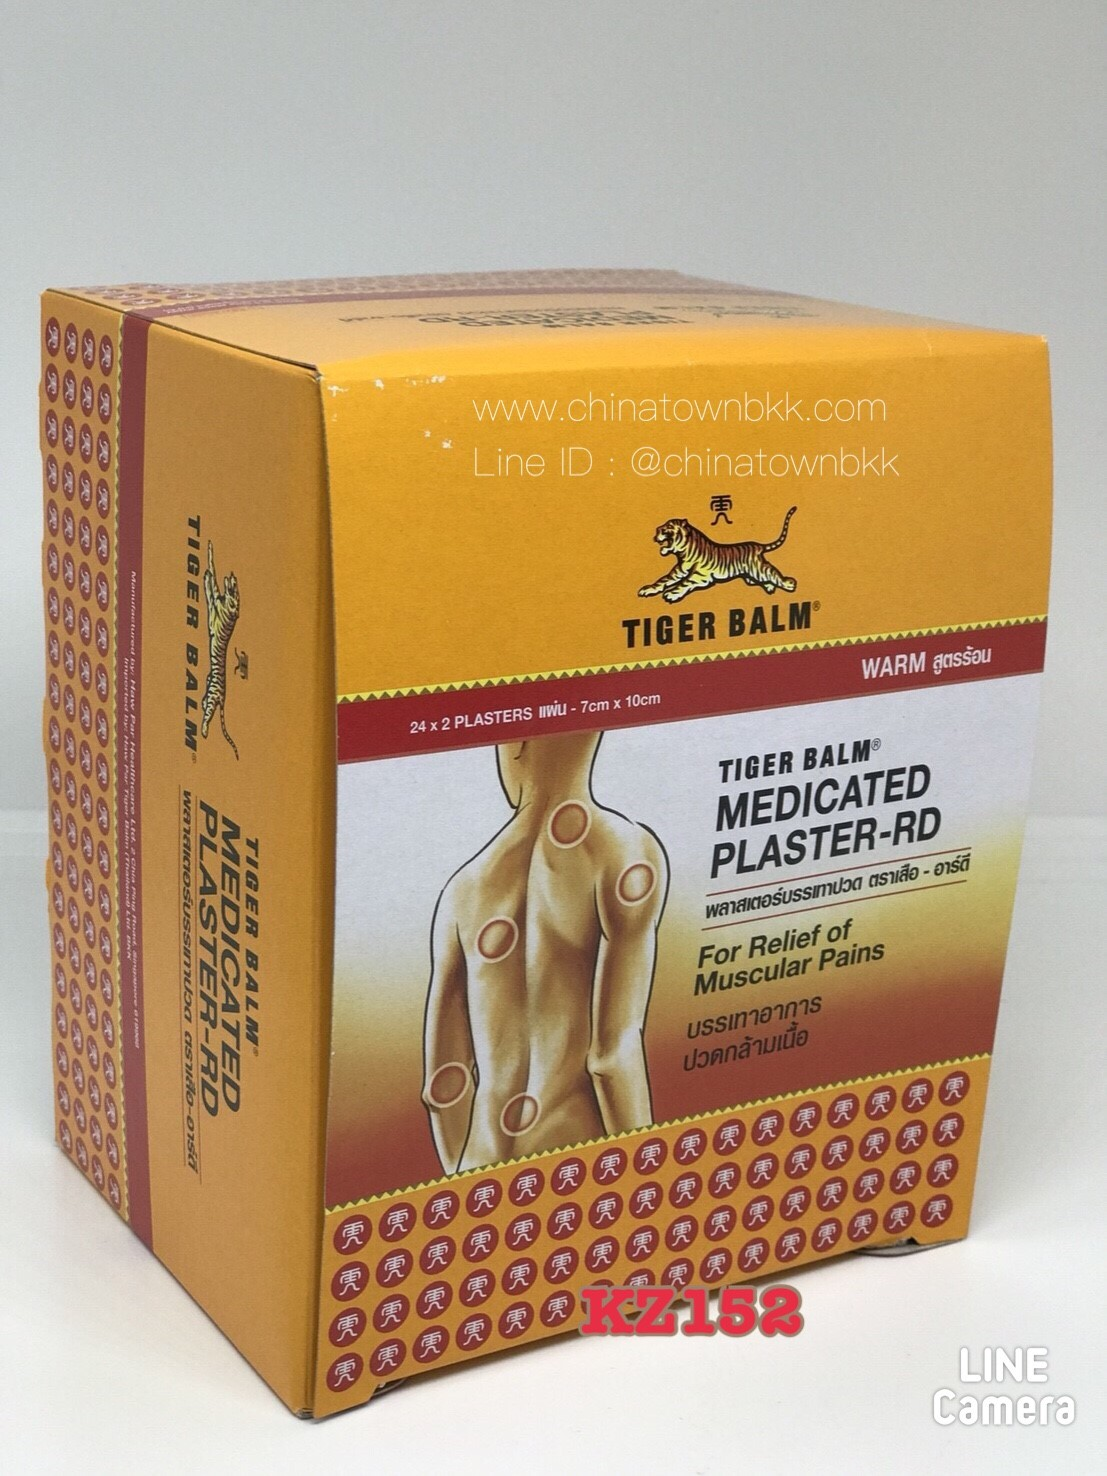 Tiger Balm Medicated Plaster-RD